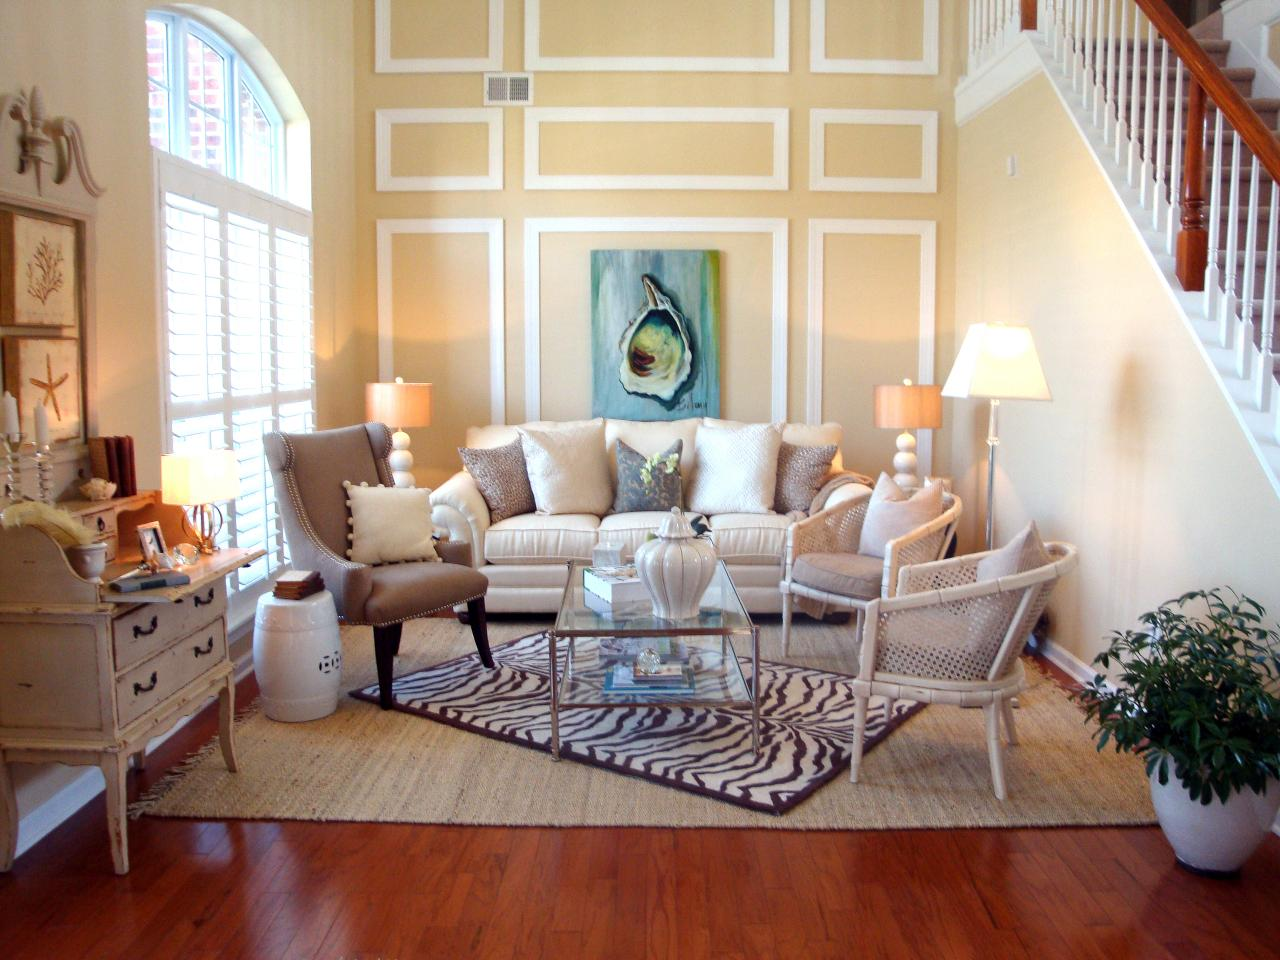 Coastal decorating ideas beachfront bargain hunt hgtv Coastal living rooms ideas